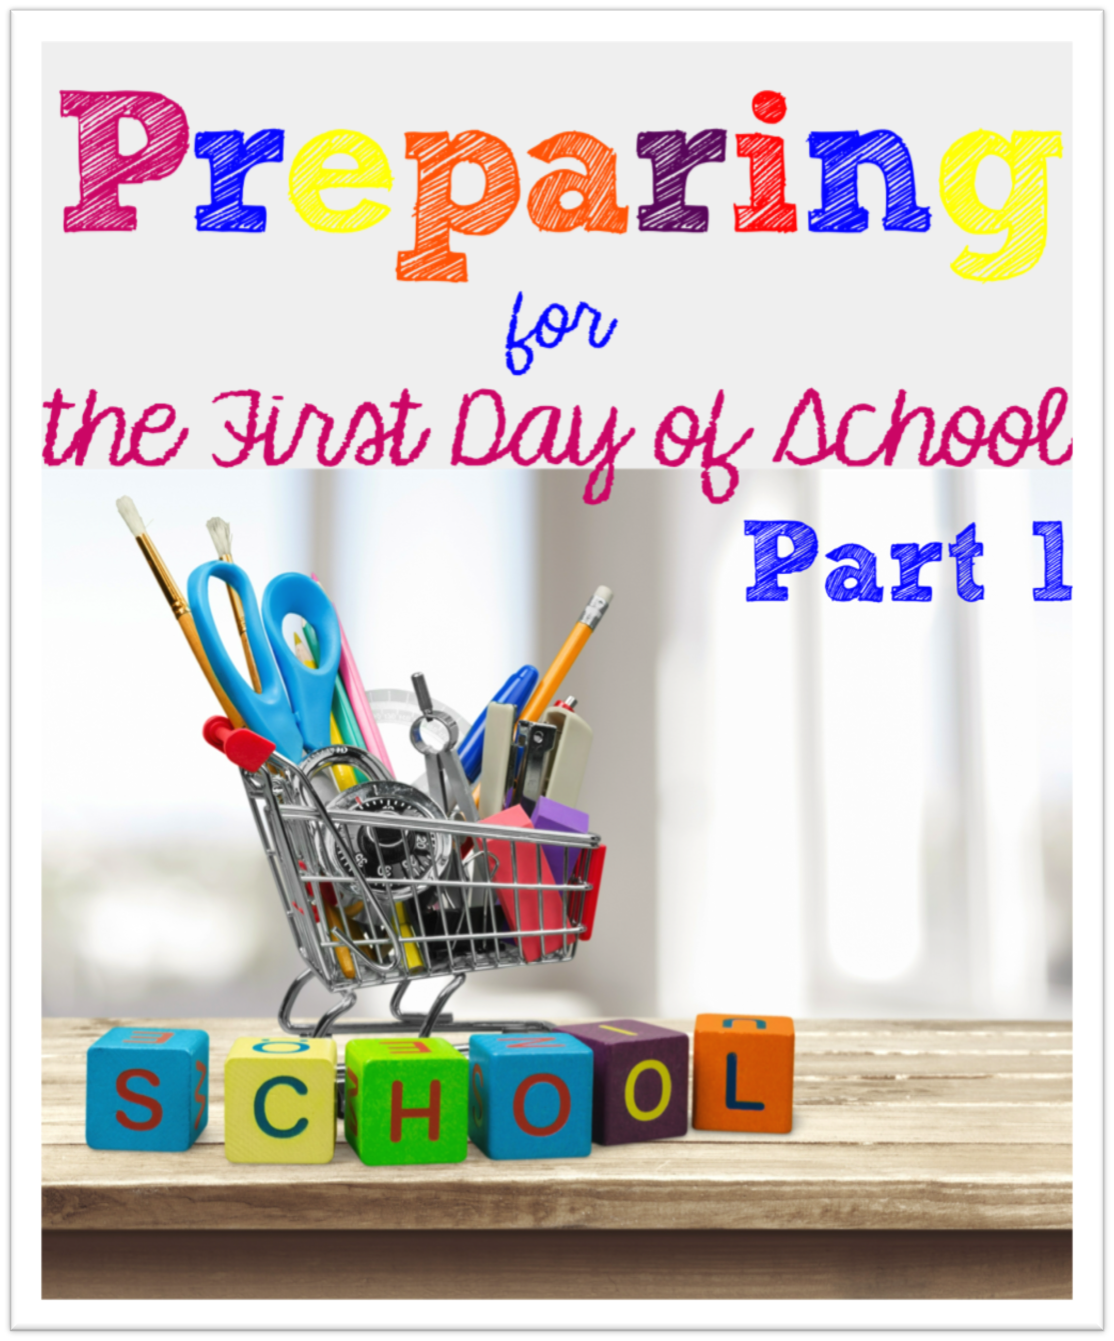 Worksheet Preparing For The First Day Of School time 4 kindergarten preparing for the first day of school part 1 1